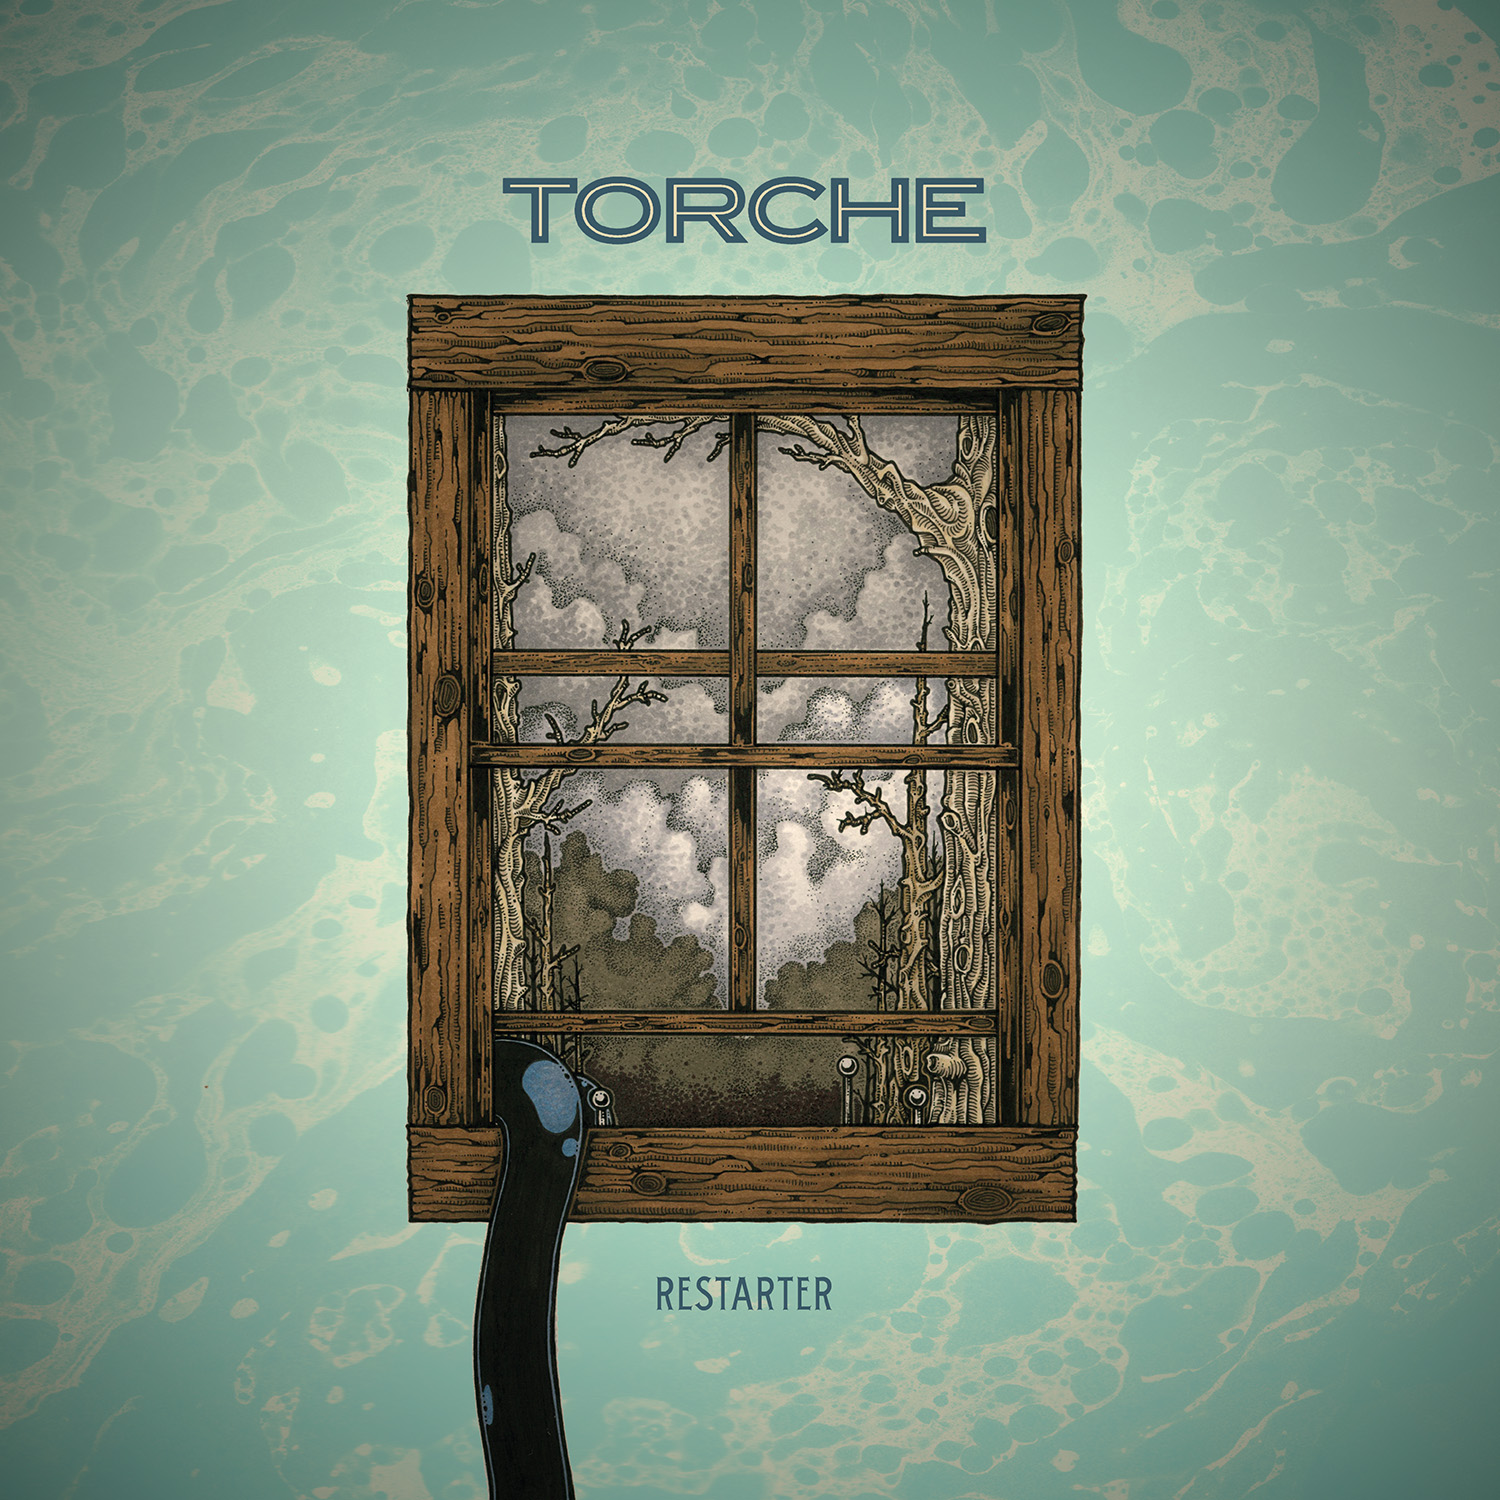 Torche – Restarter Review